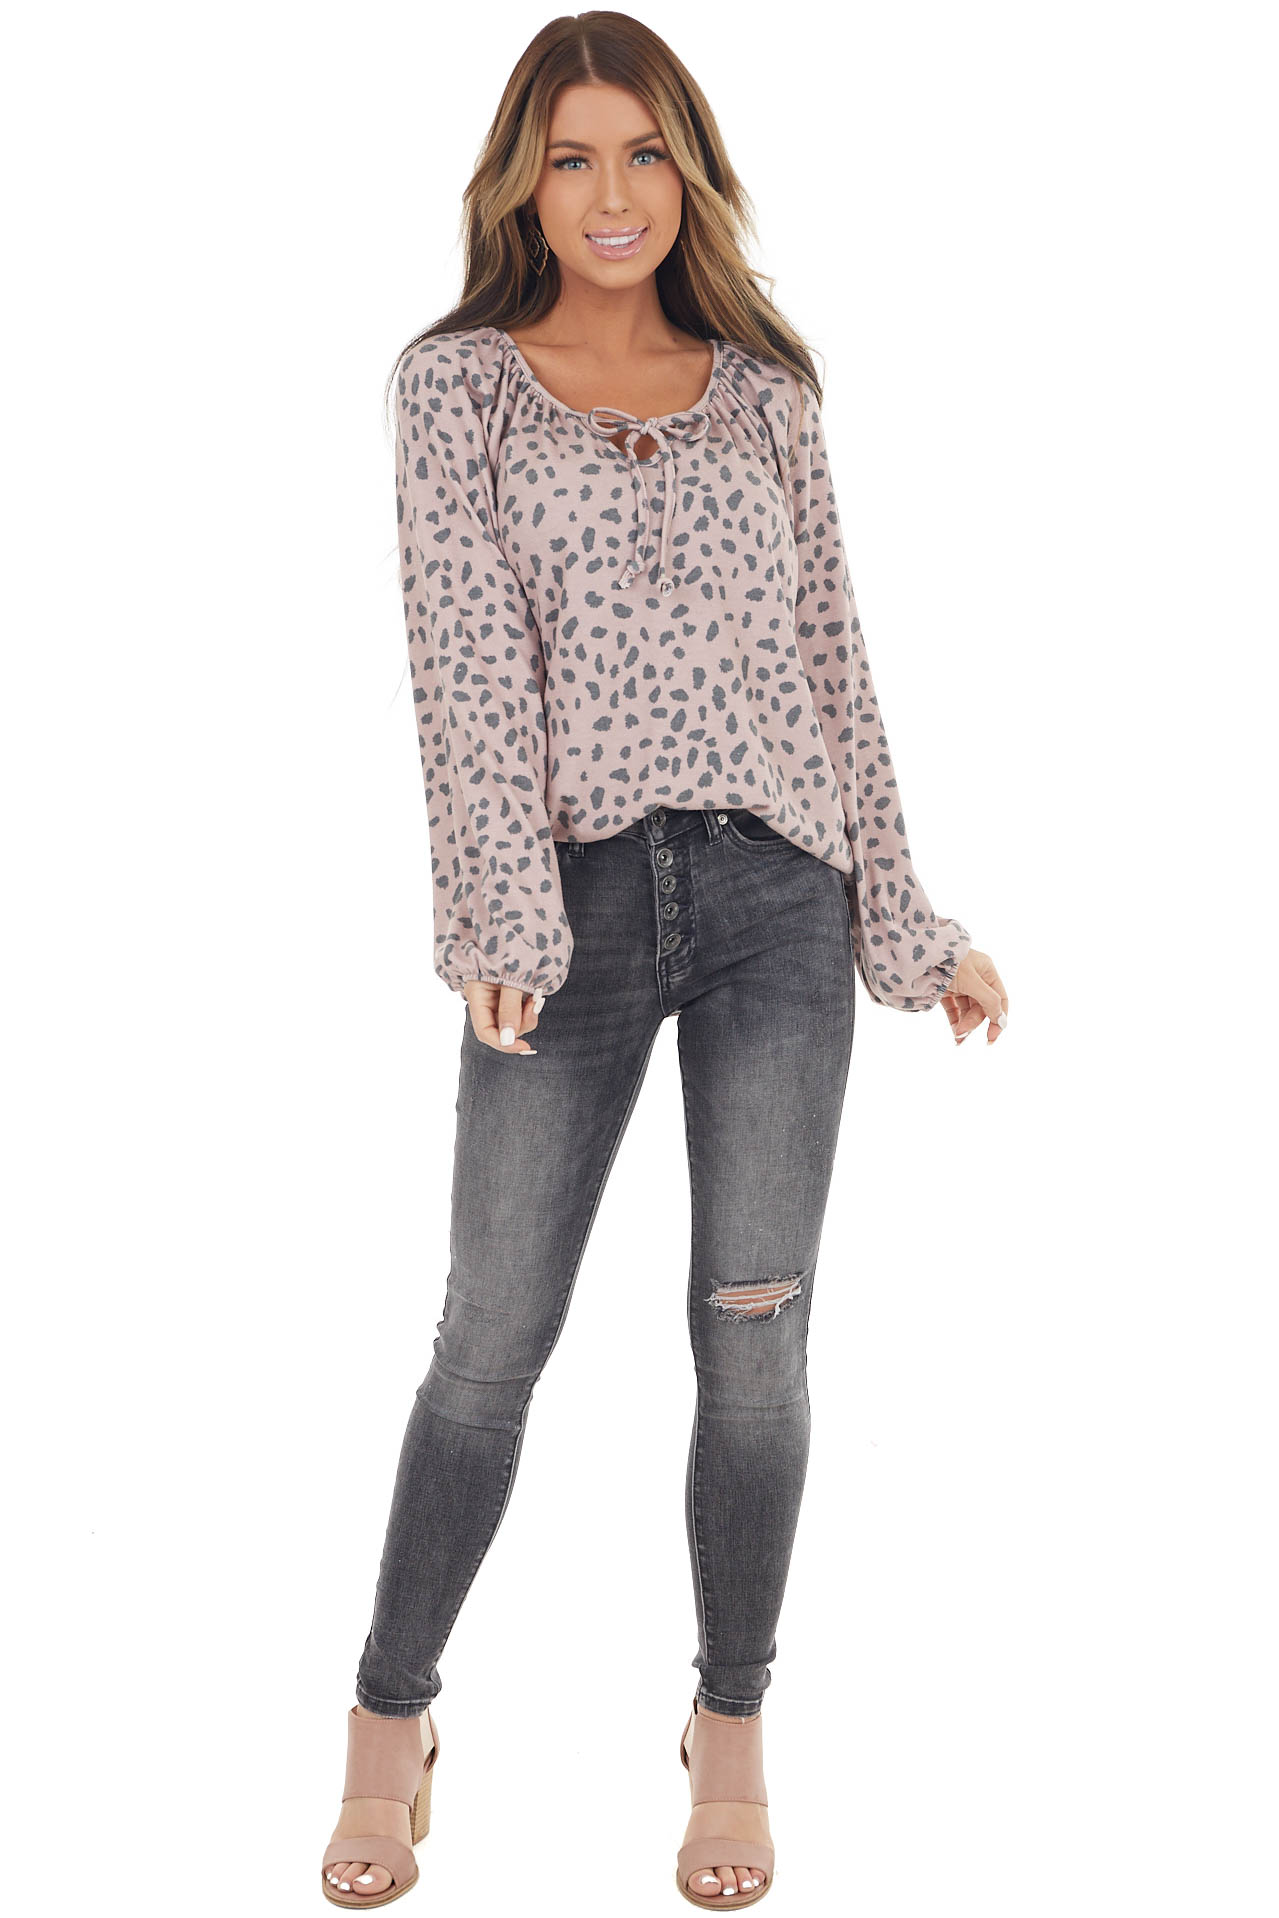 Dusty Rose and Grey Cheetah Print Puff Sleeve Peasant Top